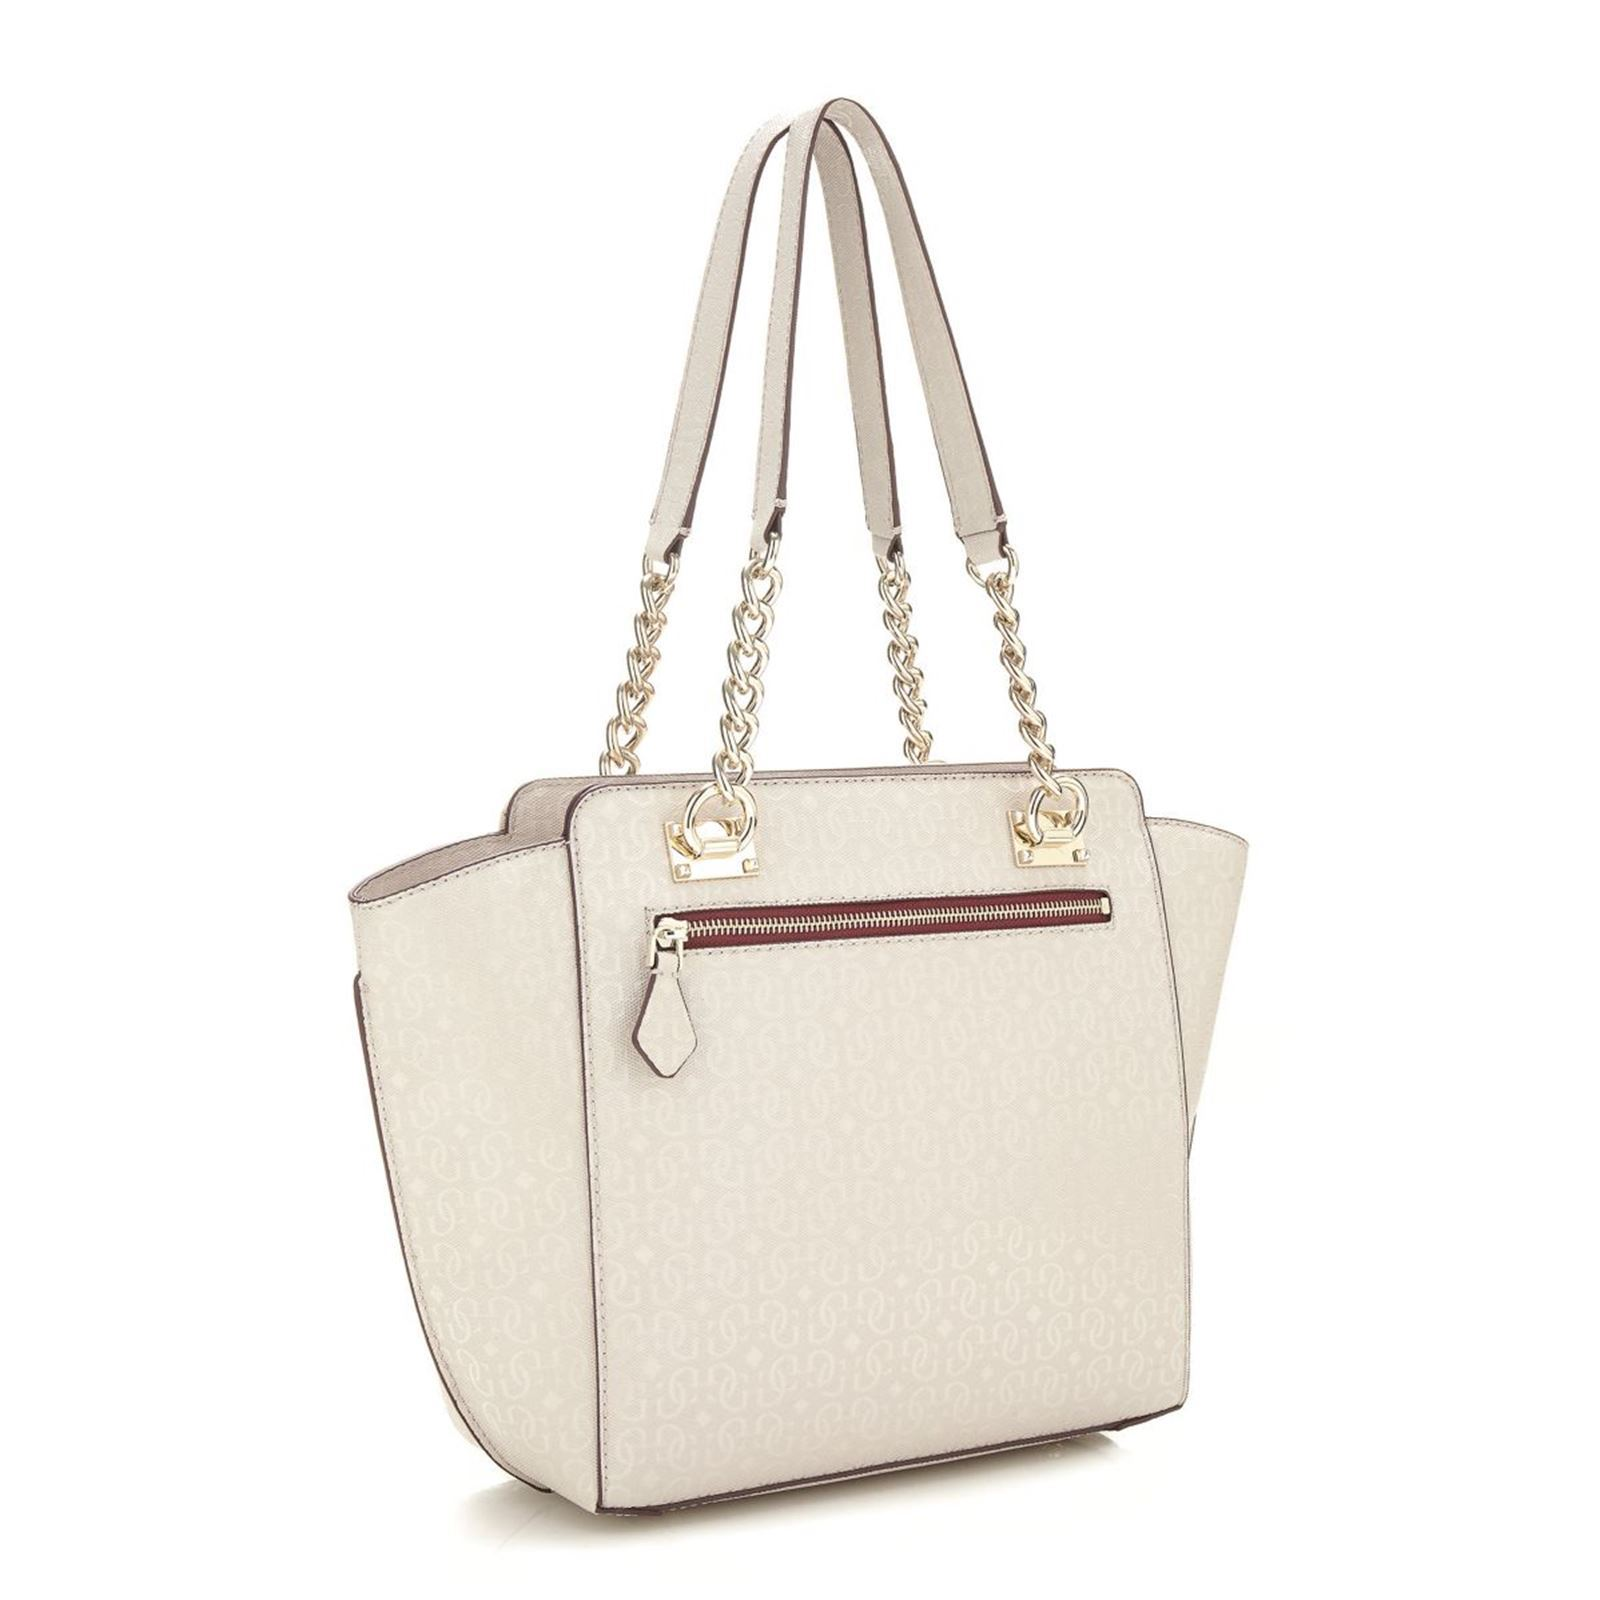 Halley Pierre Guess Cabas Sac Cabas Guess Sac Pierre Halley FBnzyqTw5